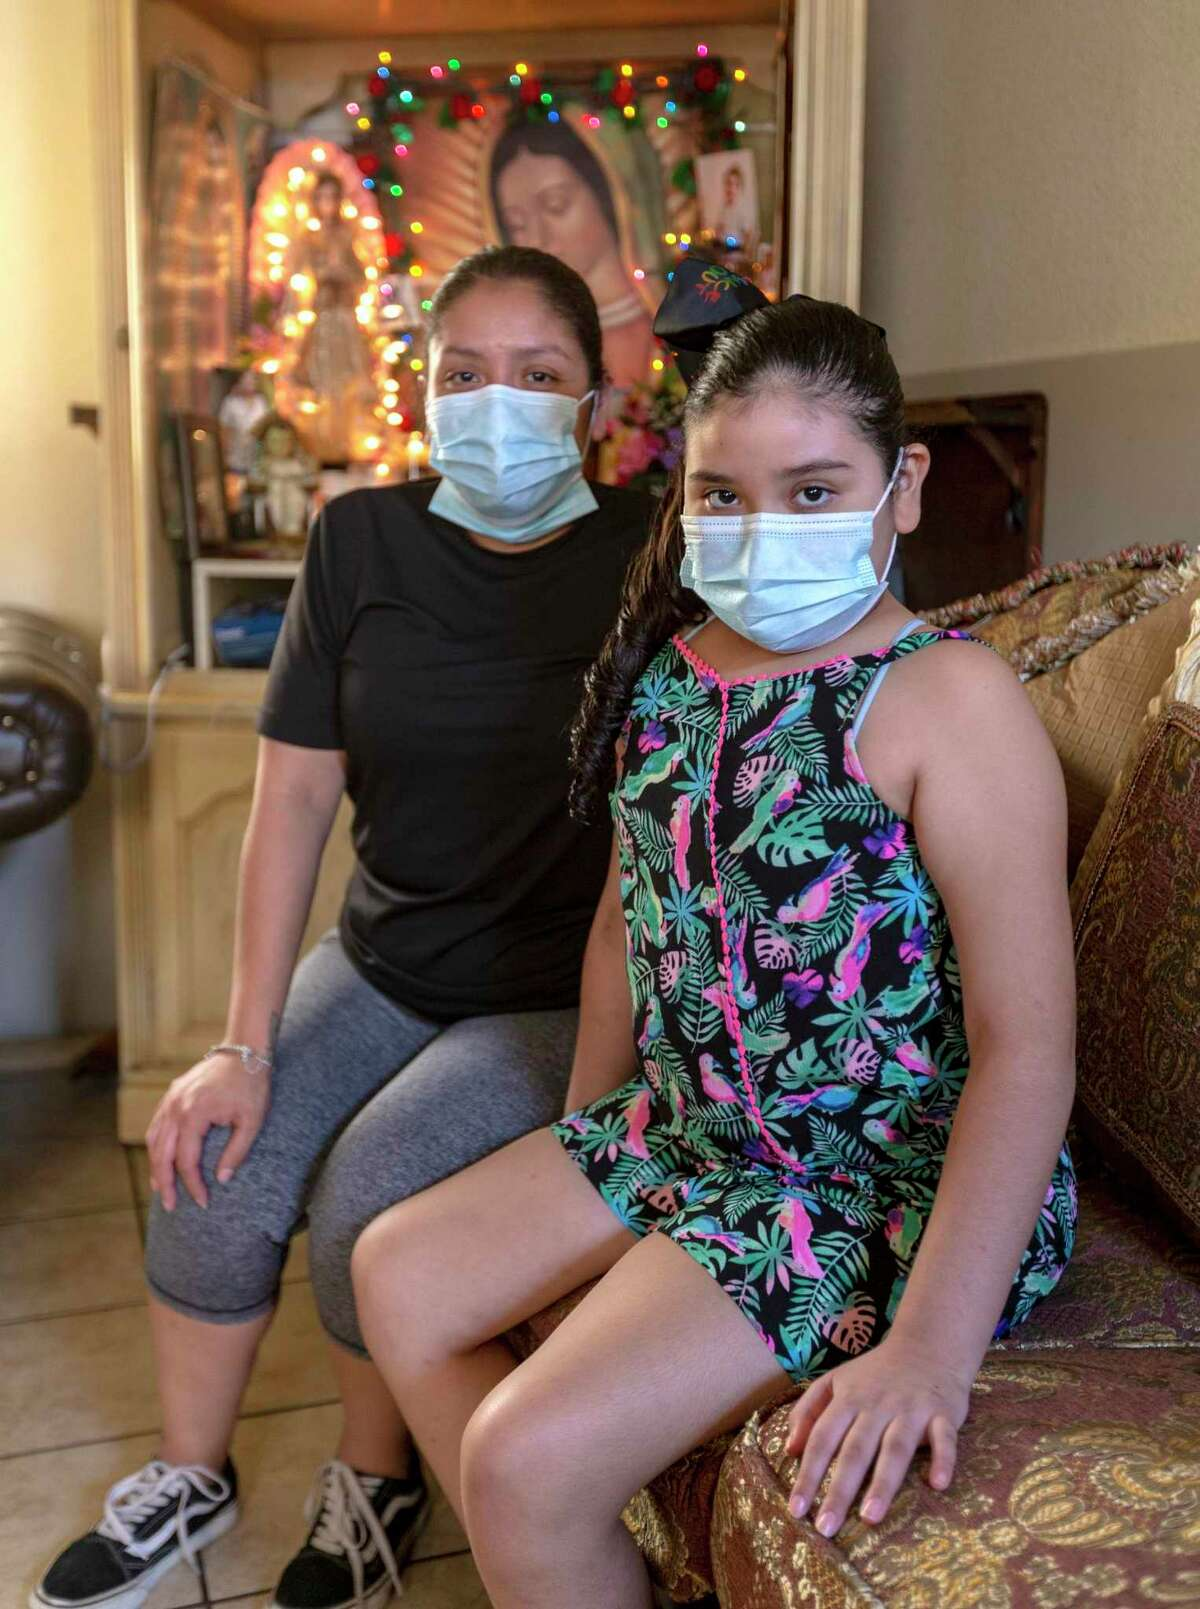 """San Juana Rios, left, said it infuriates her when she sees people gathering in large crowds, increasing the chances of spreading the coronavirus. Maybe if one of their children ended up in the hospital they would finally """"get it,"""" she said, sitting with her daughter, Makayla Rodriquez."""